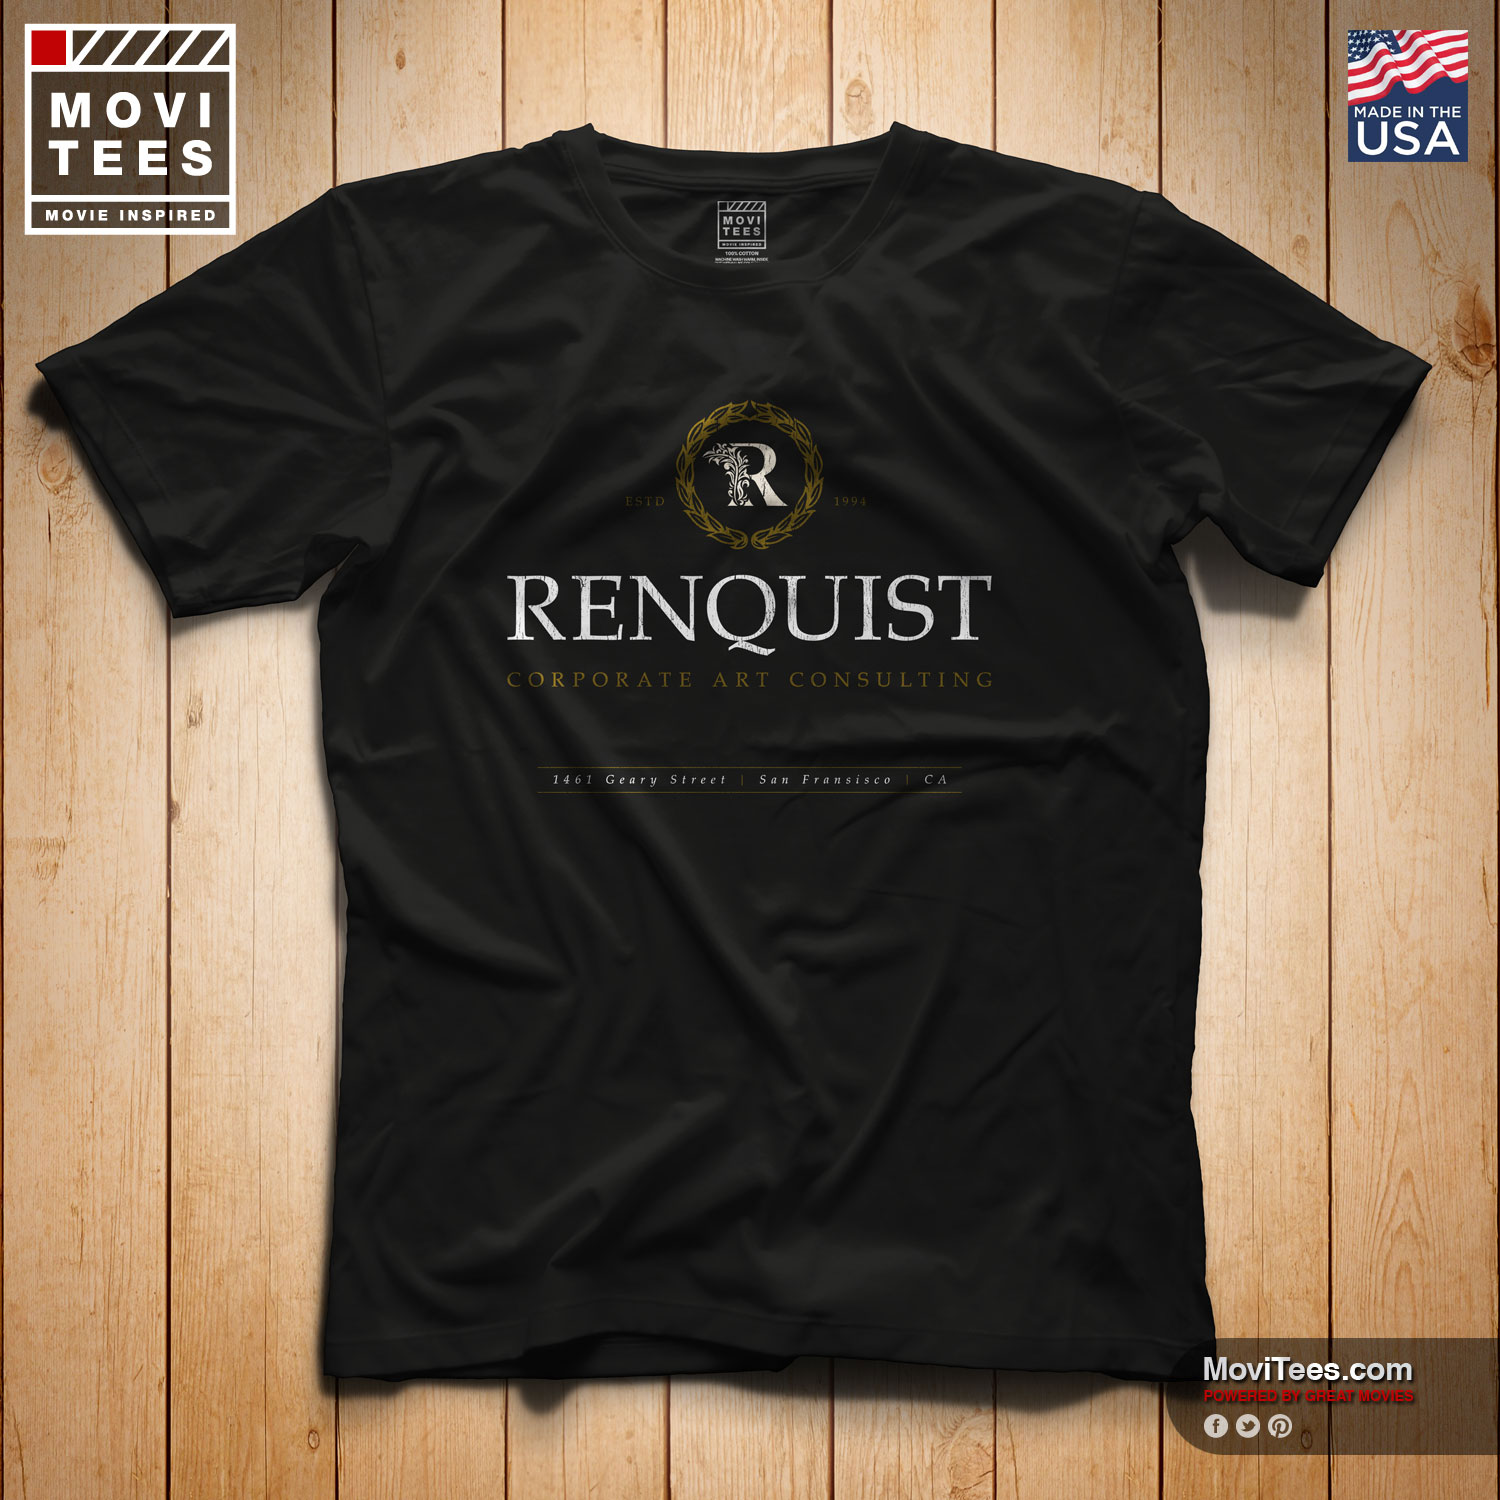 Renquist Corporate Art Consulting T-Shirt